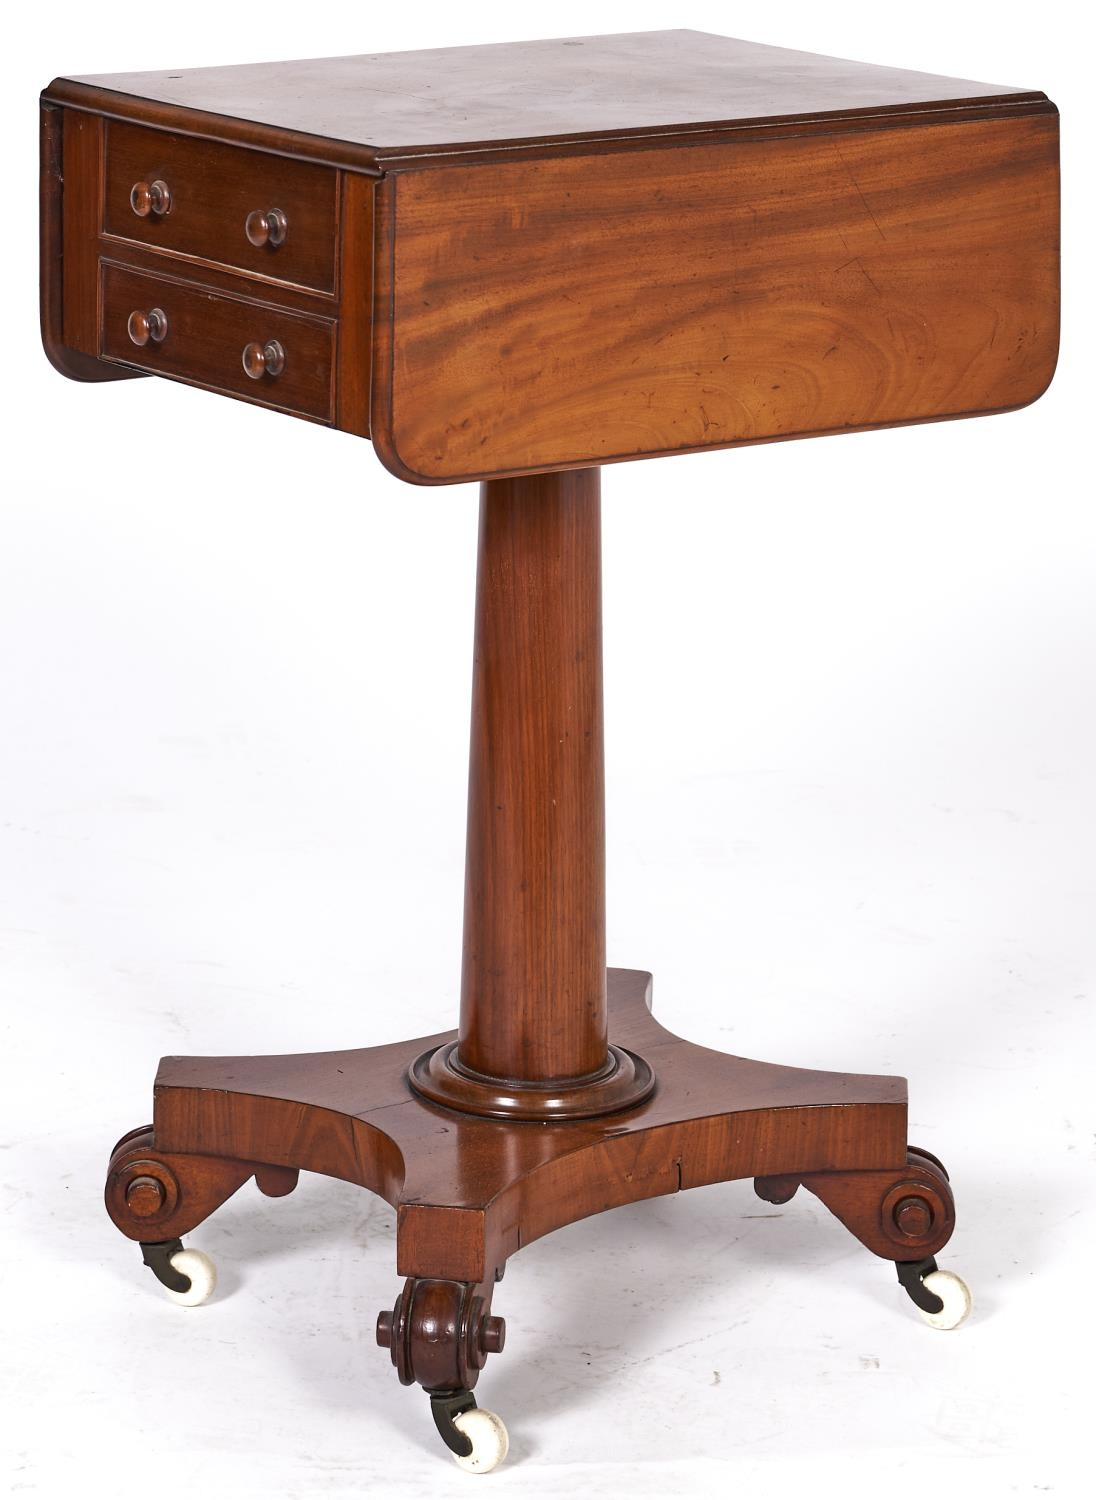 A Victorian mahogany drop leaf work table, fitted with two drawers on turned pillar and mahogany